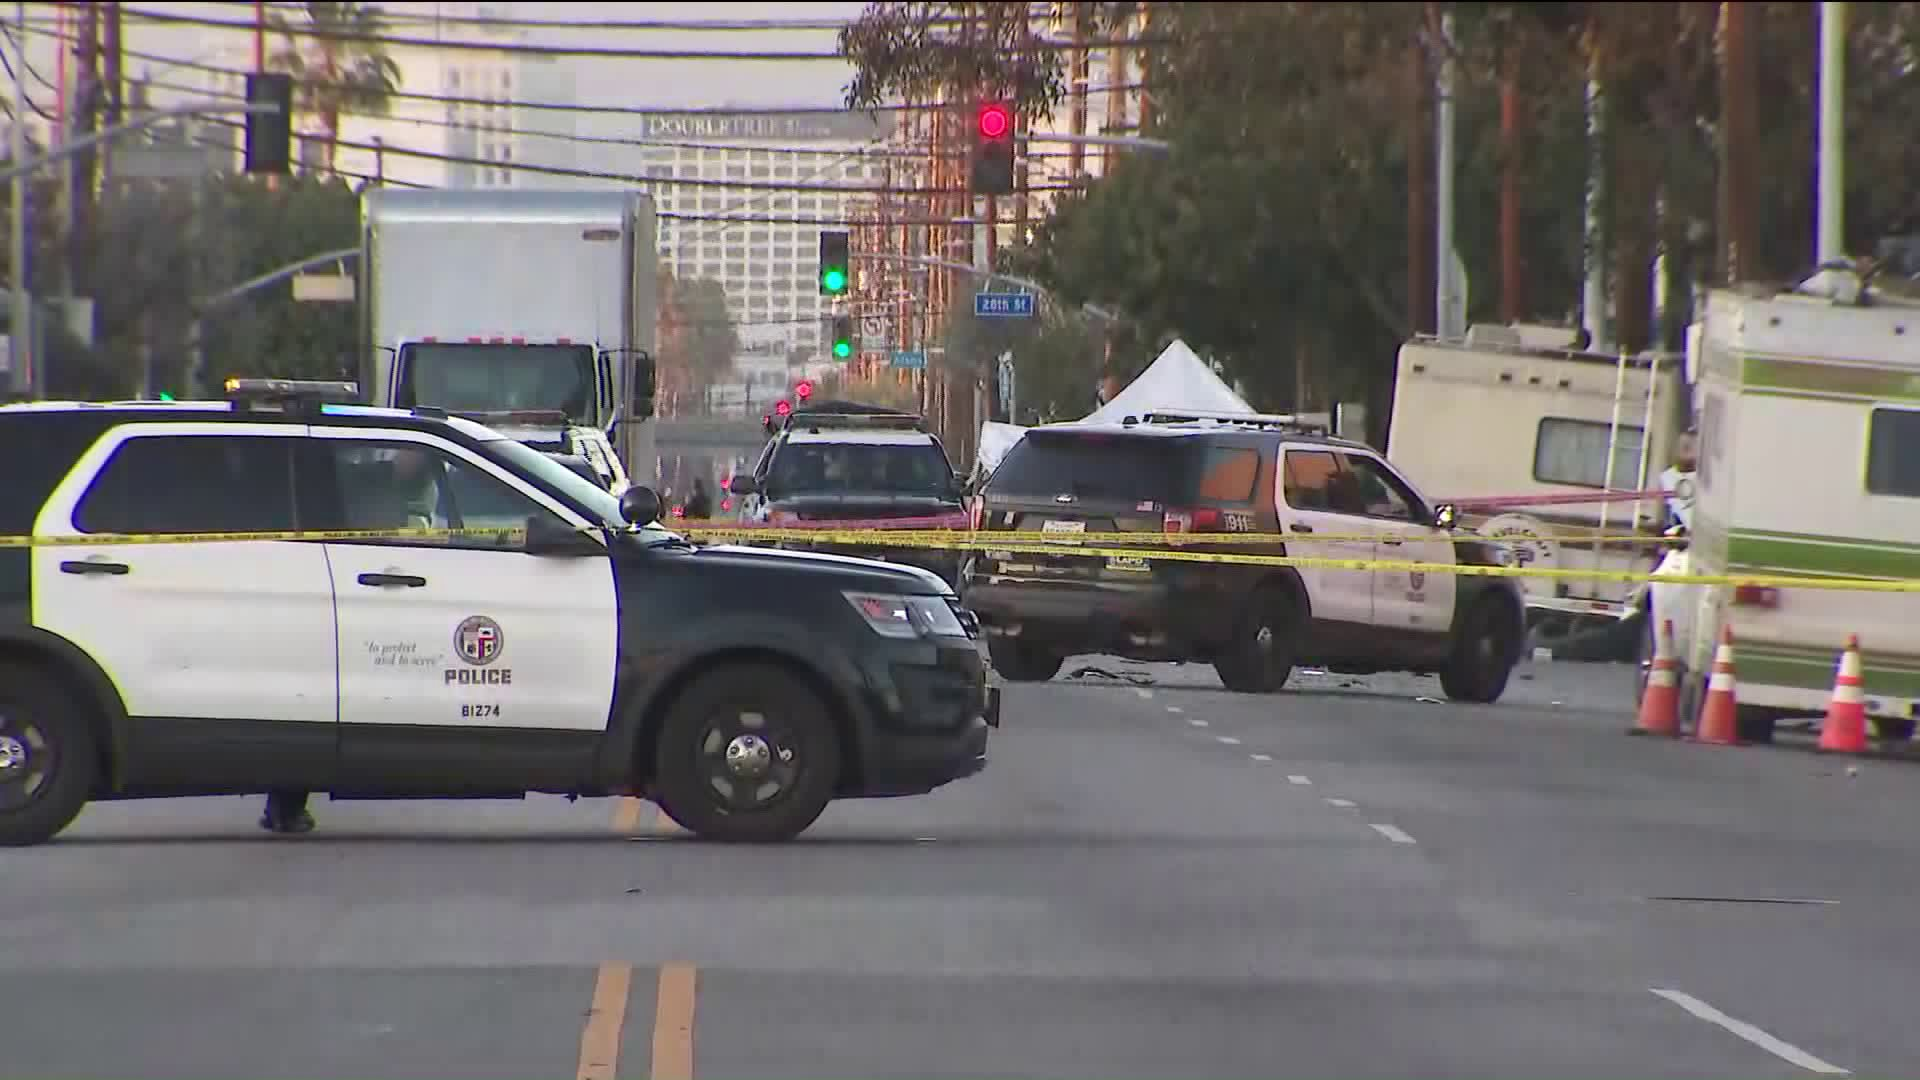 Officials investigate the scene of a shooting involving Los Angeles Police Department officers in Los Angeles' Historic South-Central neighborhood on April 22, 2020. (KTLA)